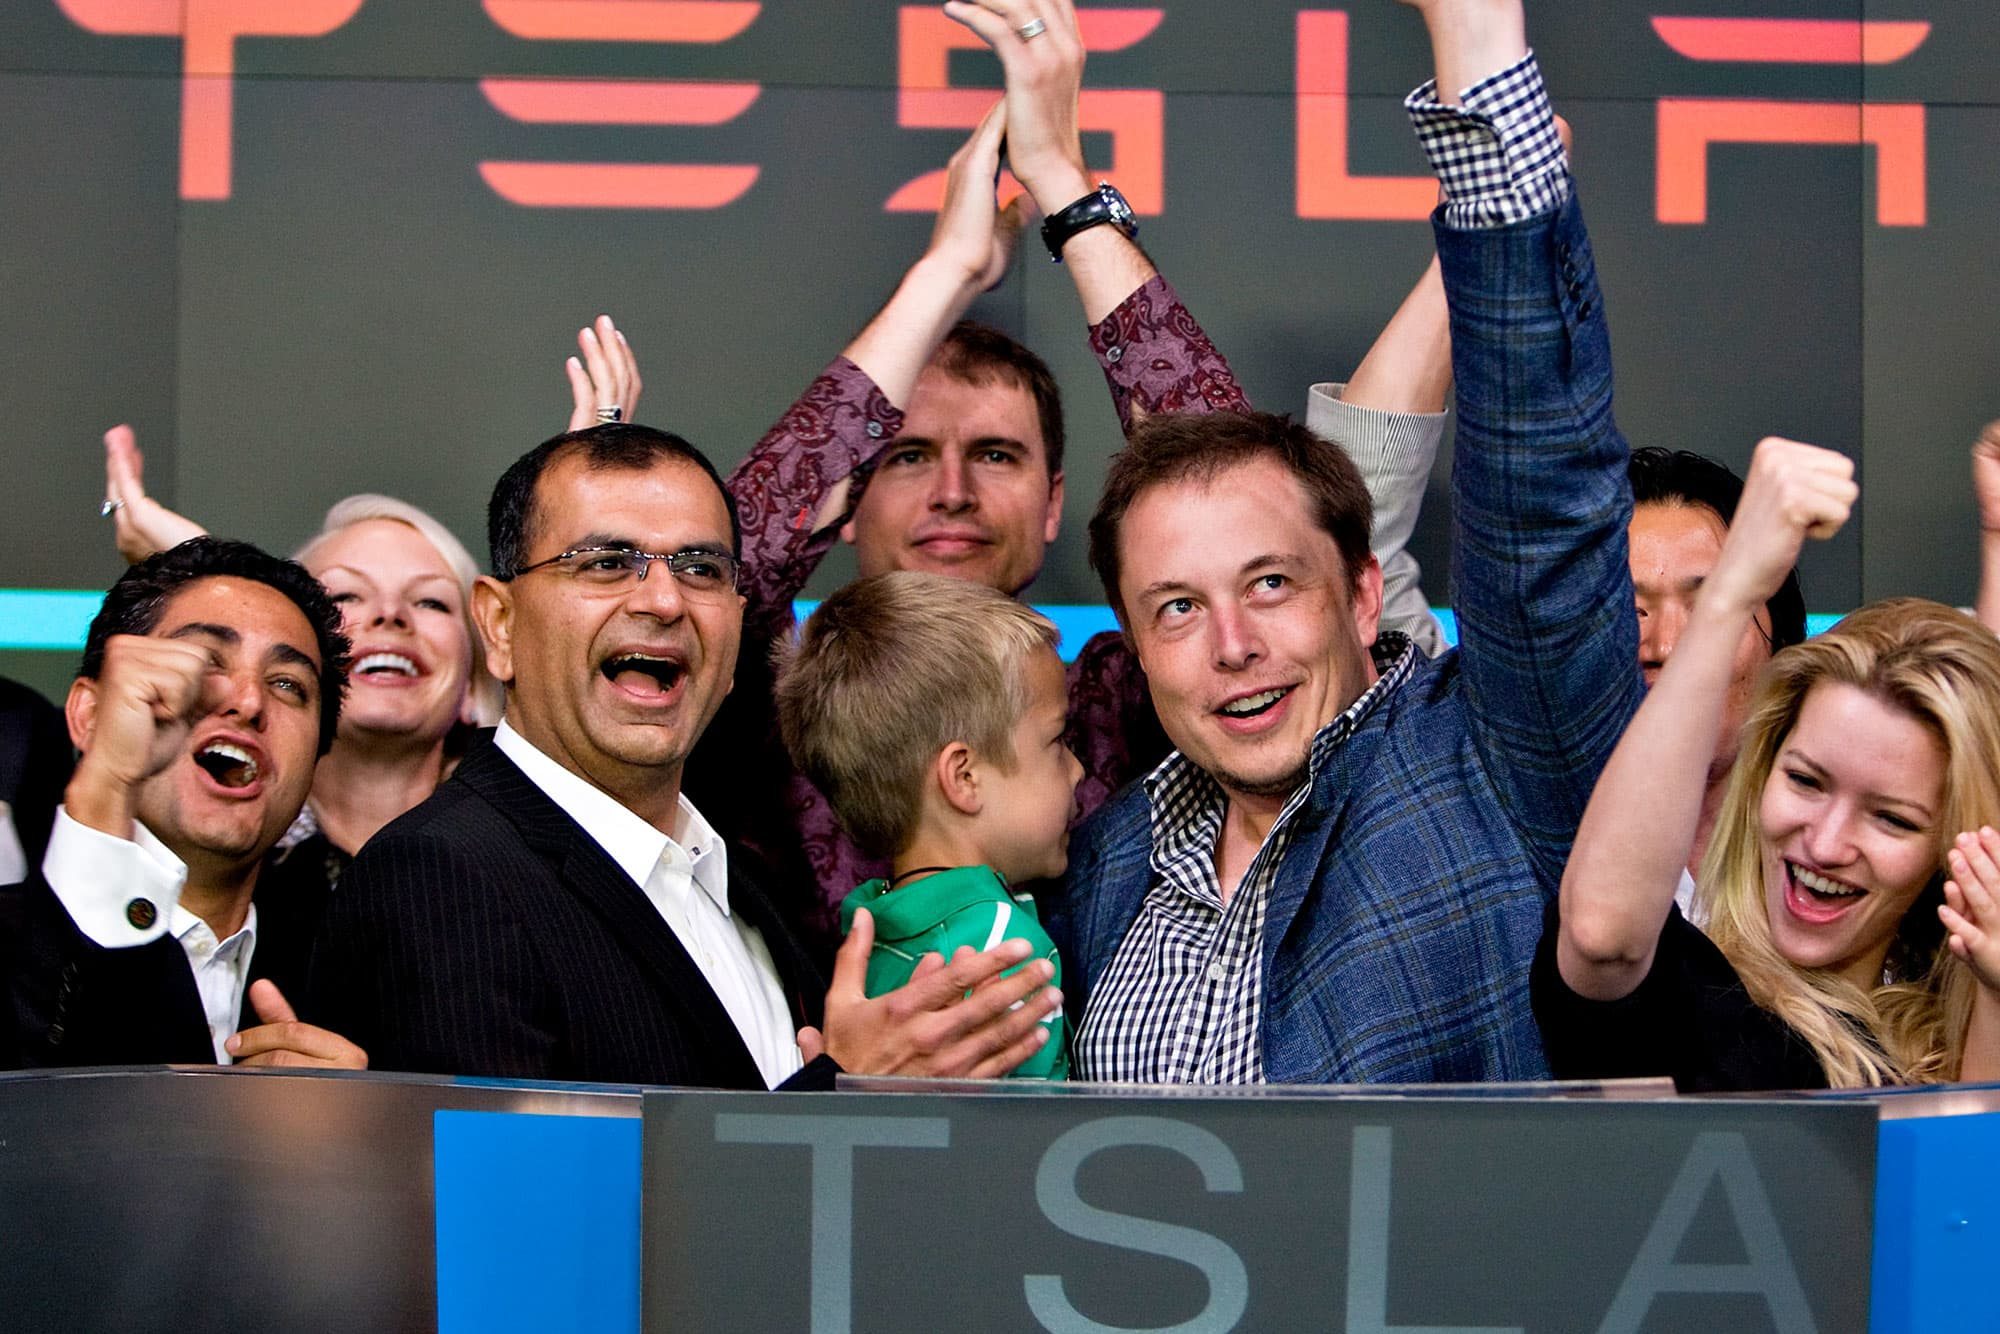 Deepak Ahuja, Tesla CFO (left) and Elon Musk, Tesla founder and CEO (right), at the Nasdaq opening bell ceremony for the Tesla initial public offering on Tuesday, June 29, 2010.